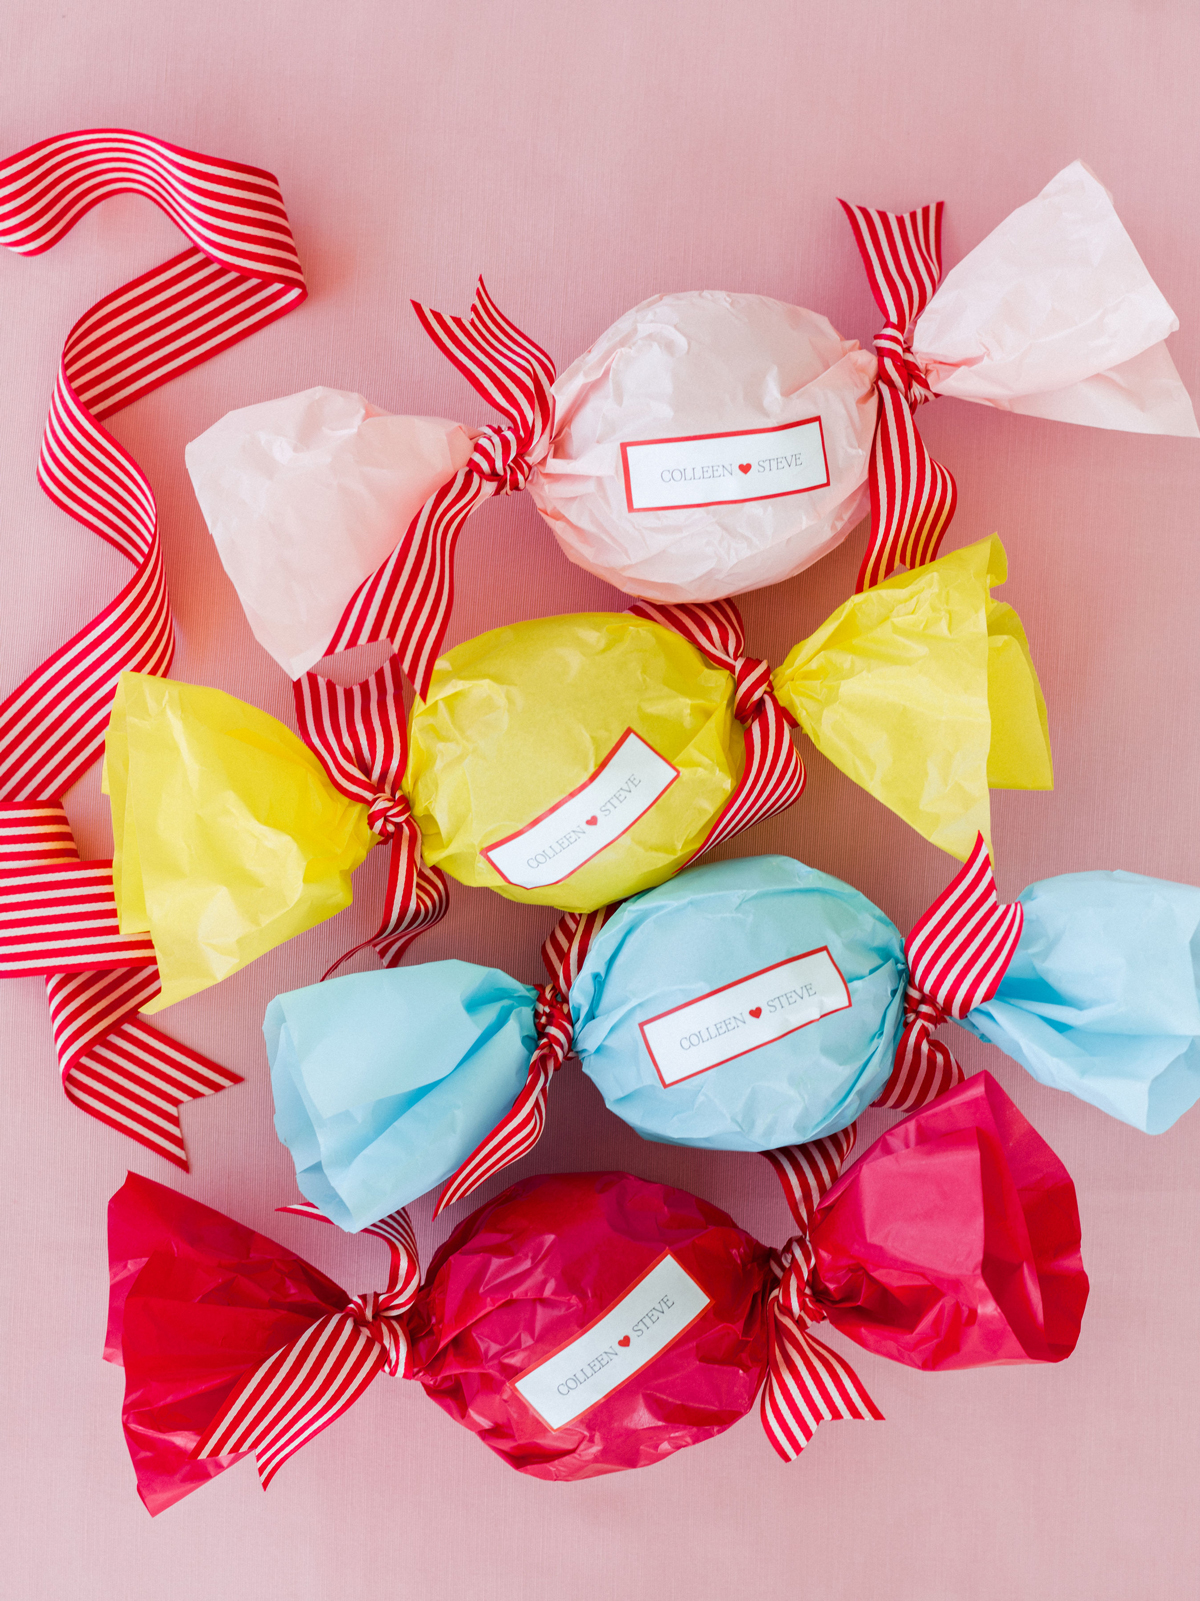 colleen stephen newport wedding colorful bon bon wedding favors